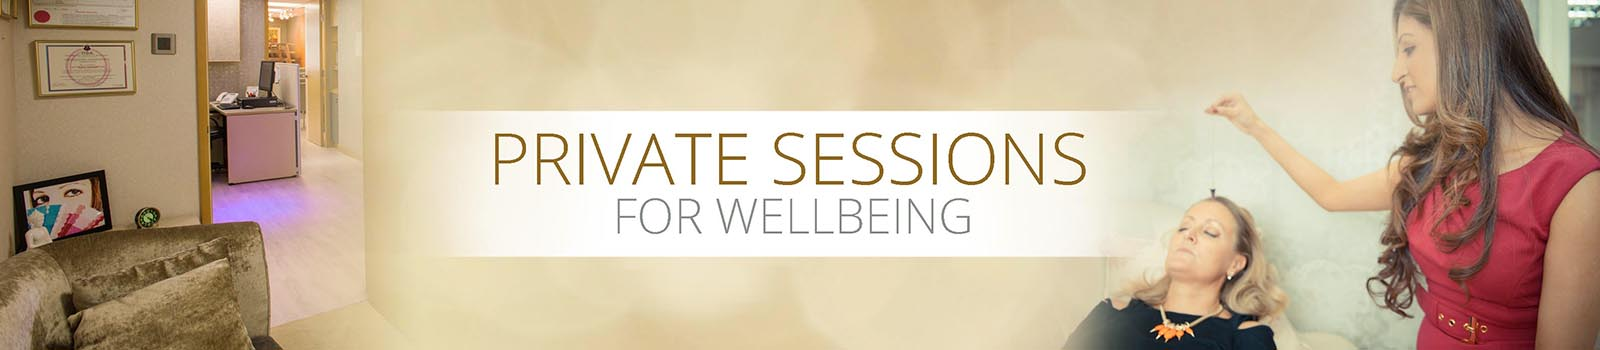 Private Sessions for Wellbeing